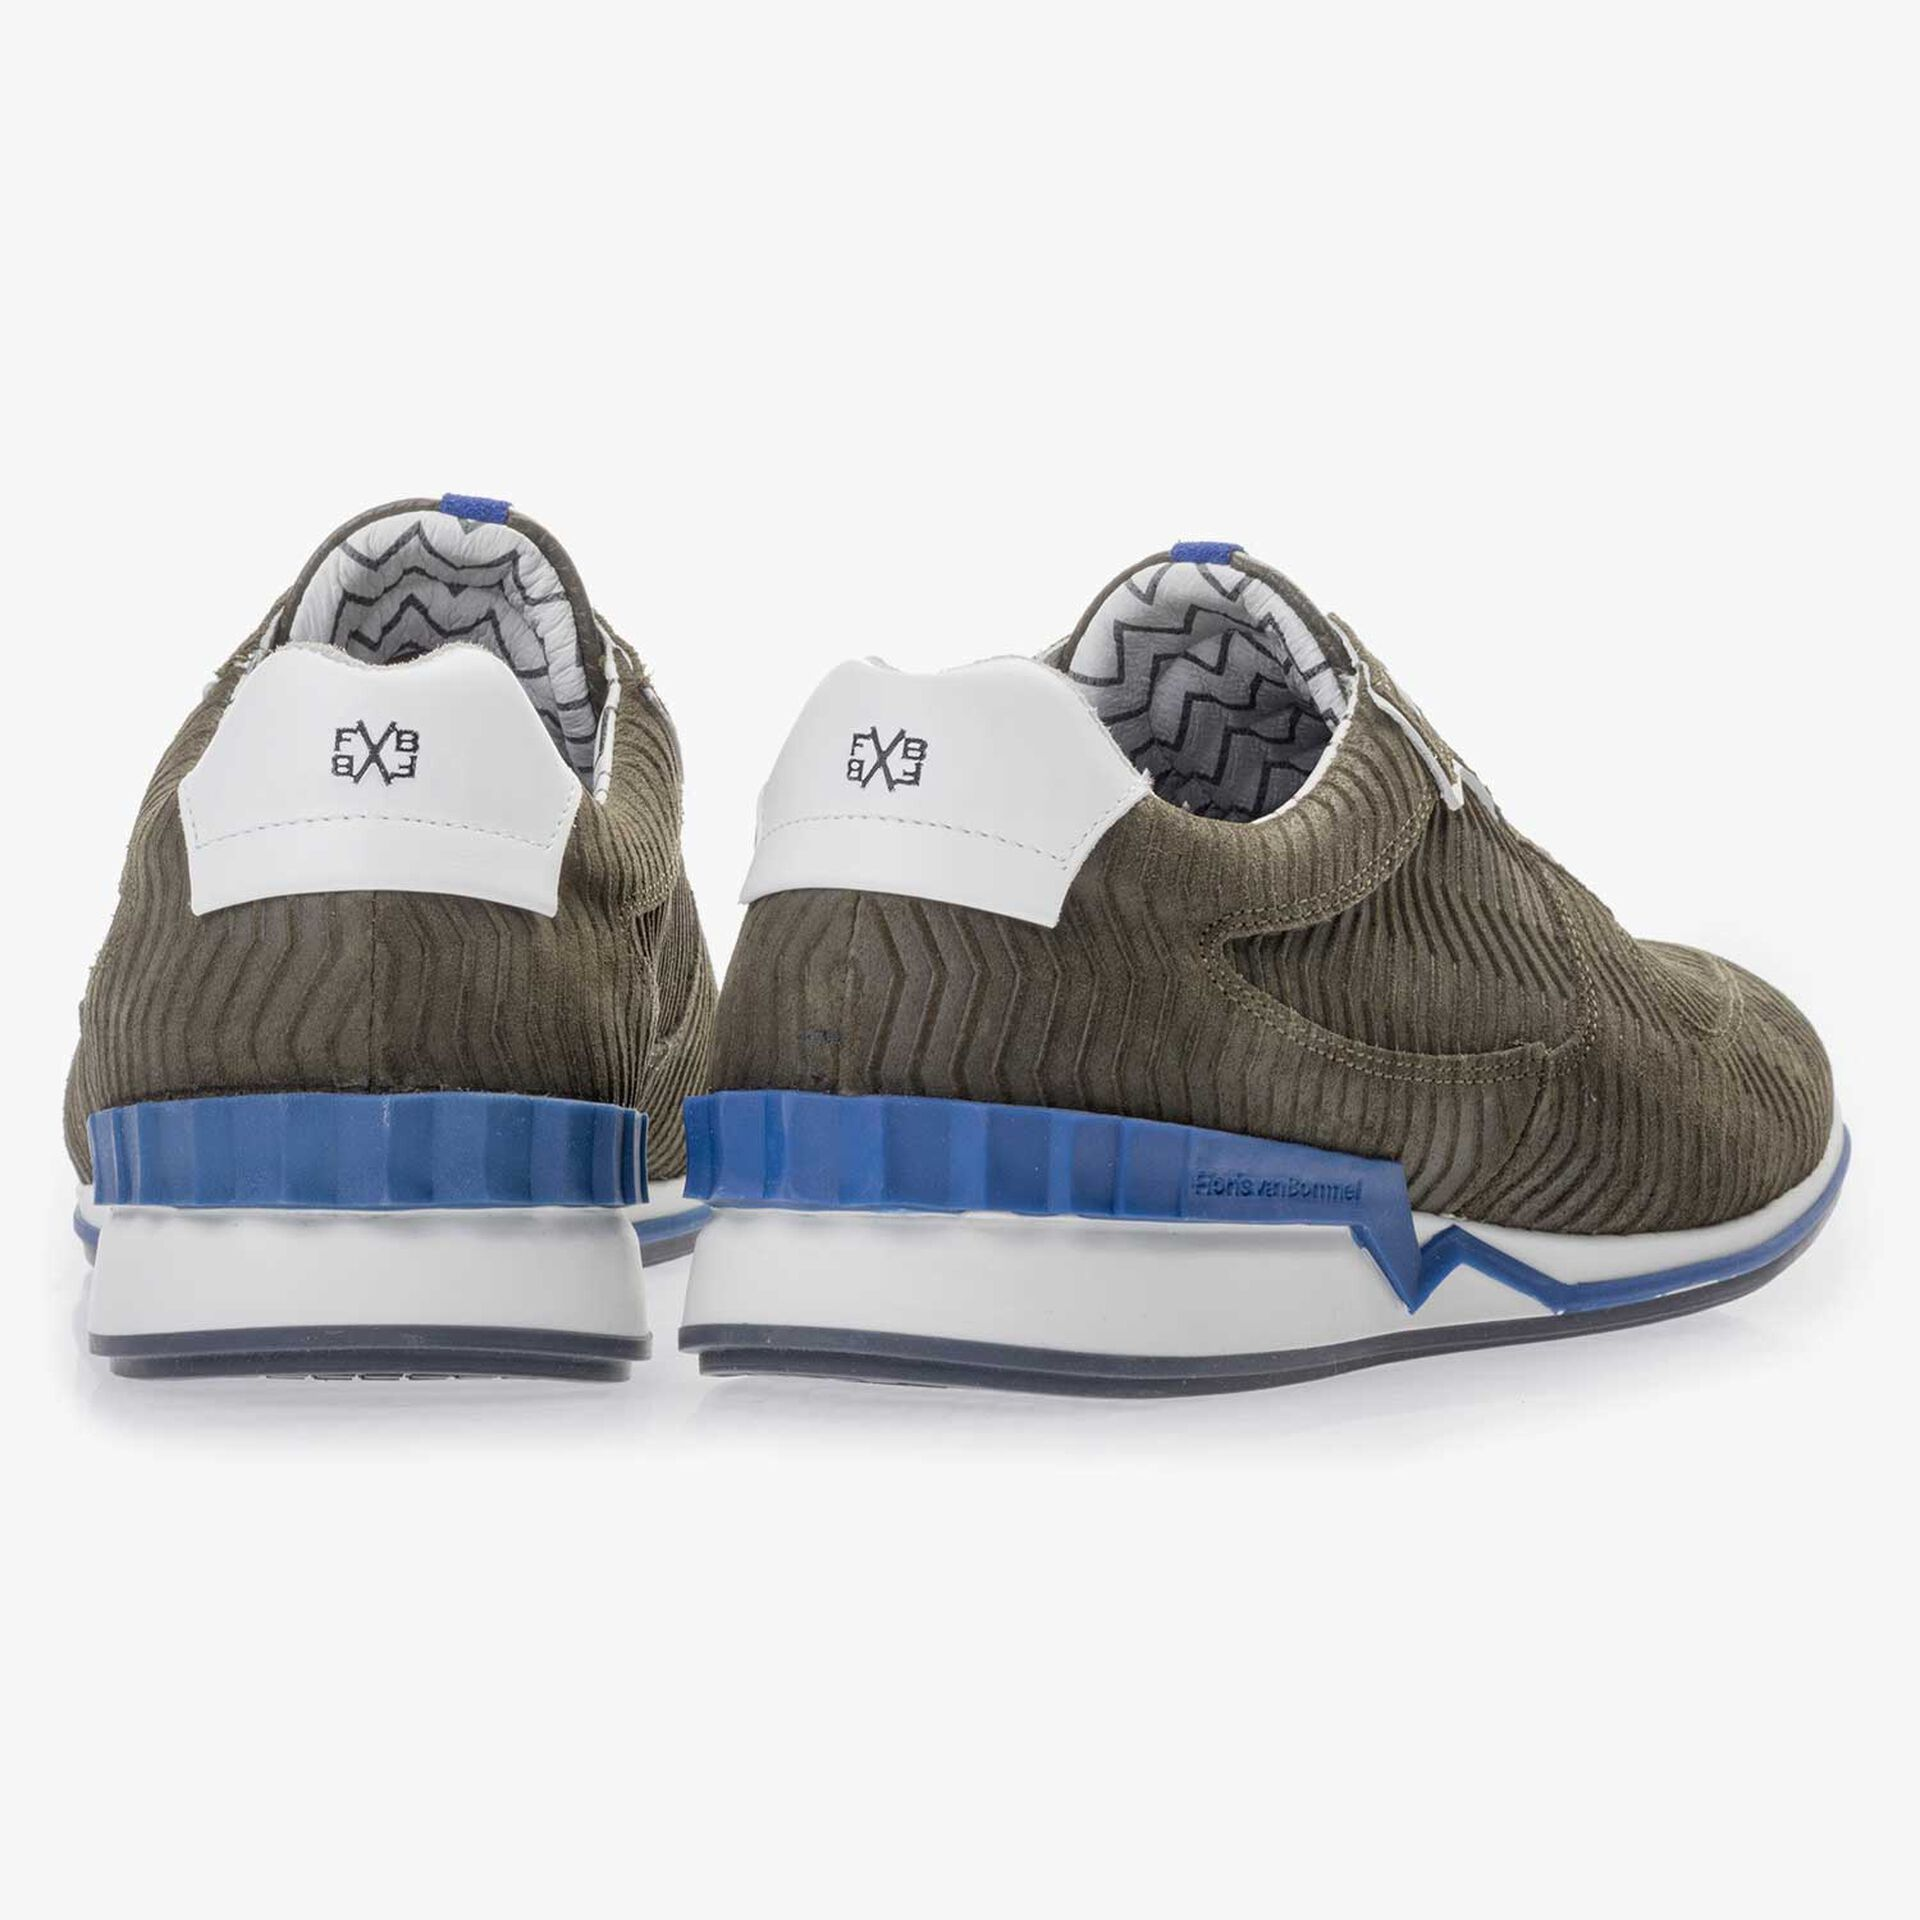 Olive green printed suede leather sneaker